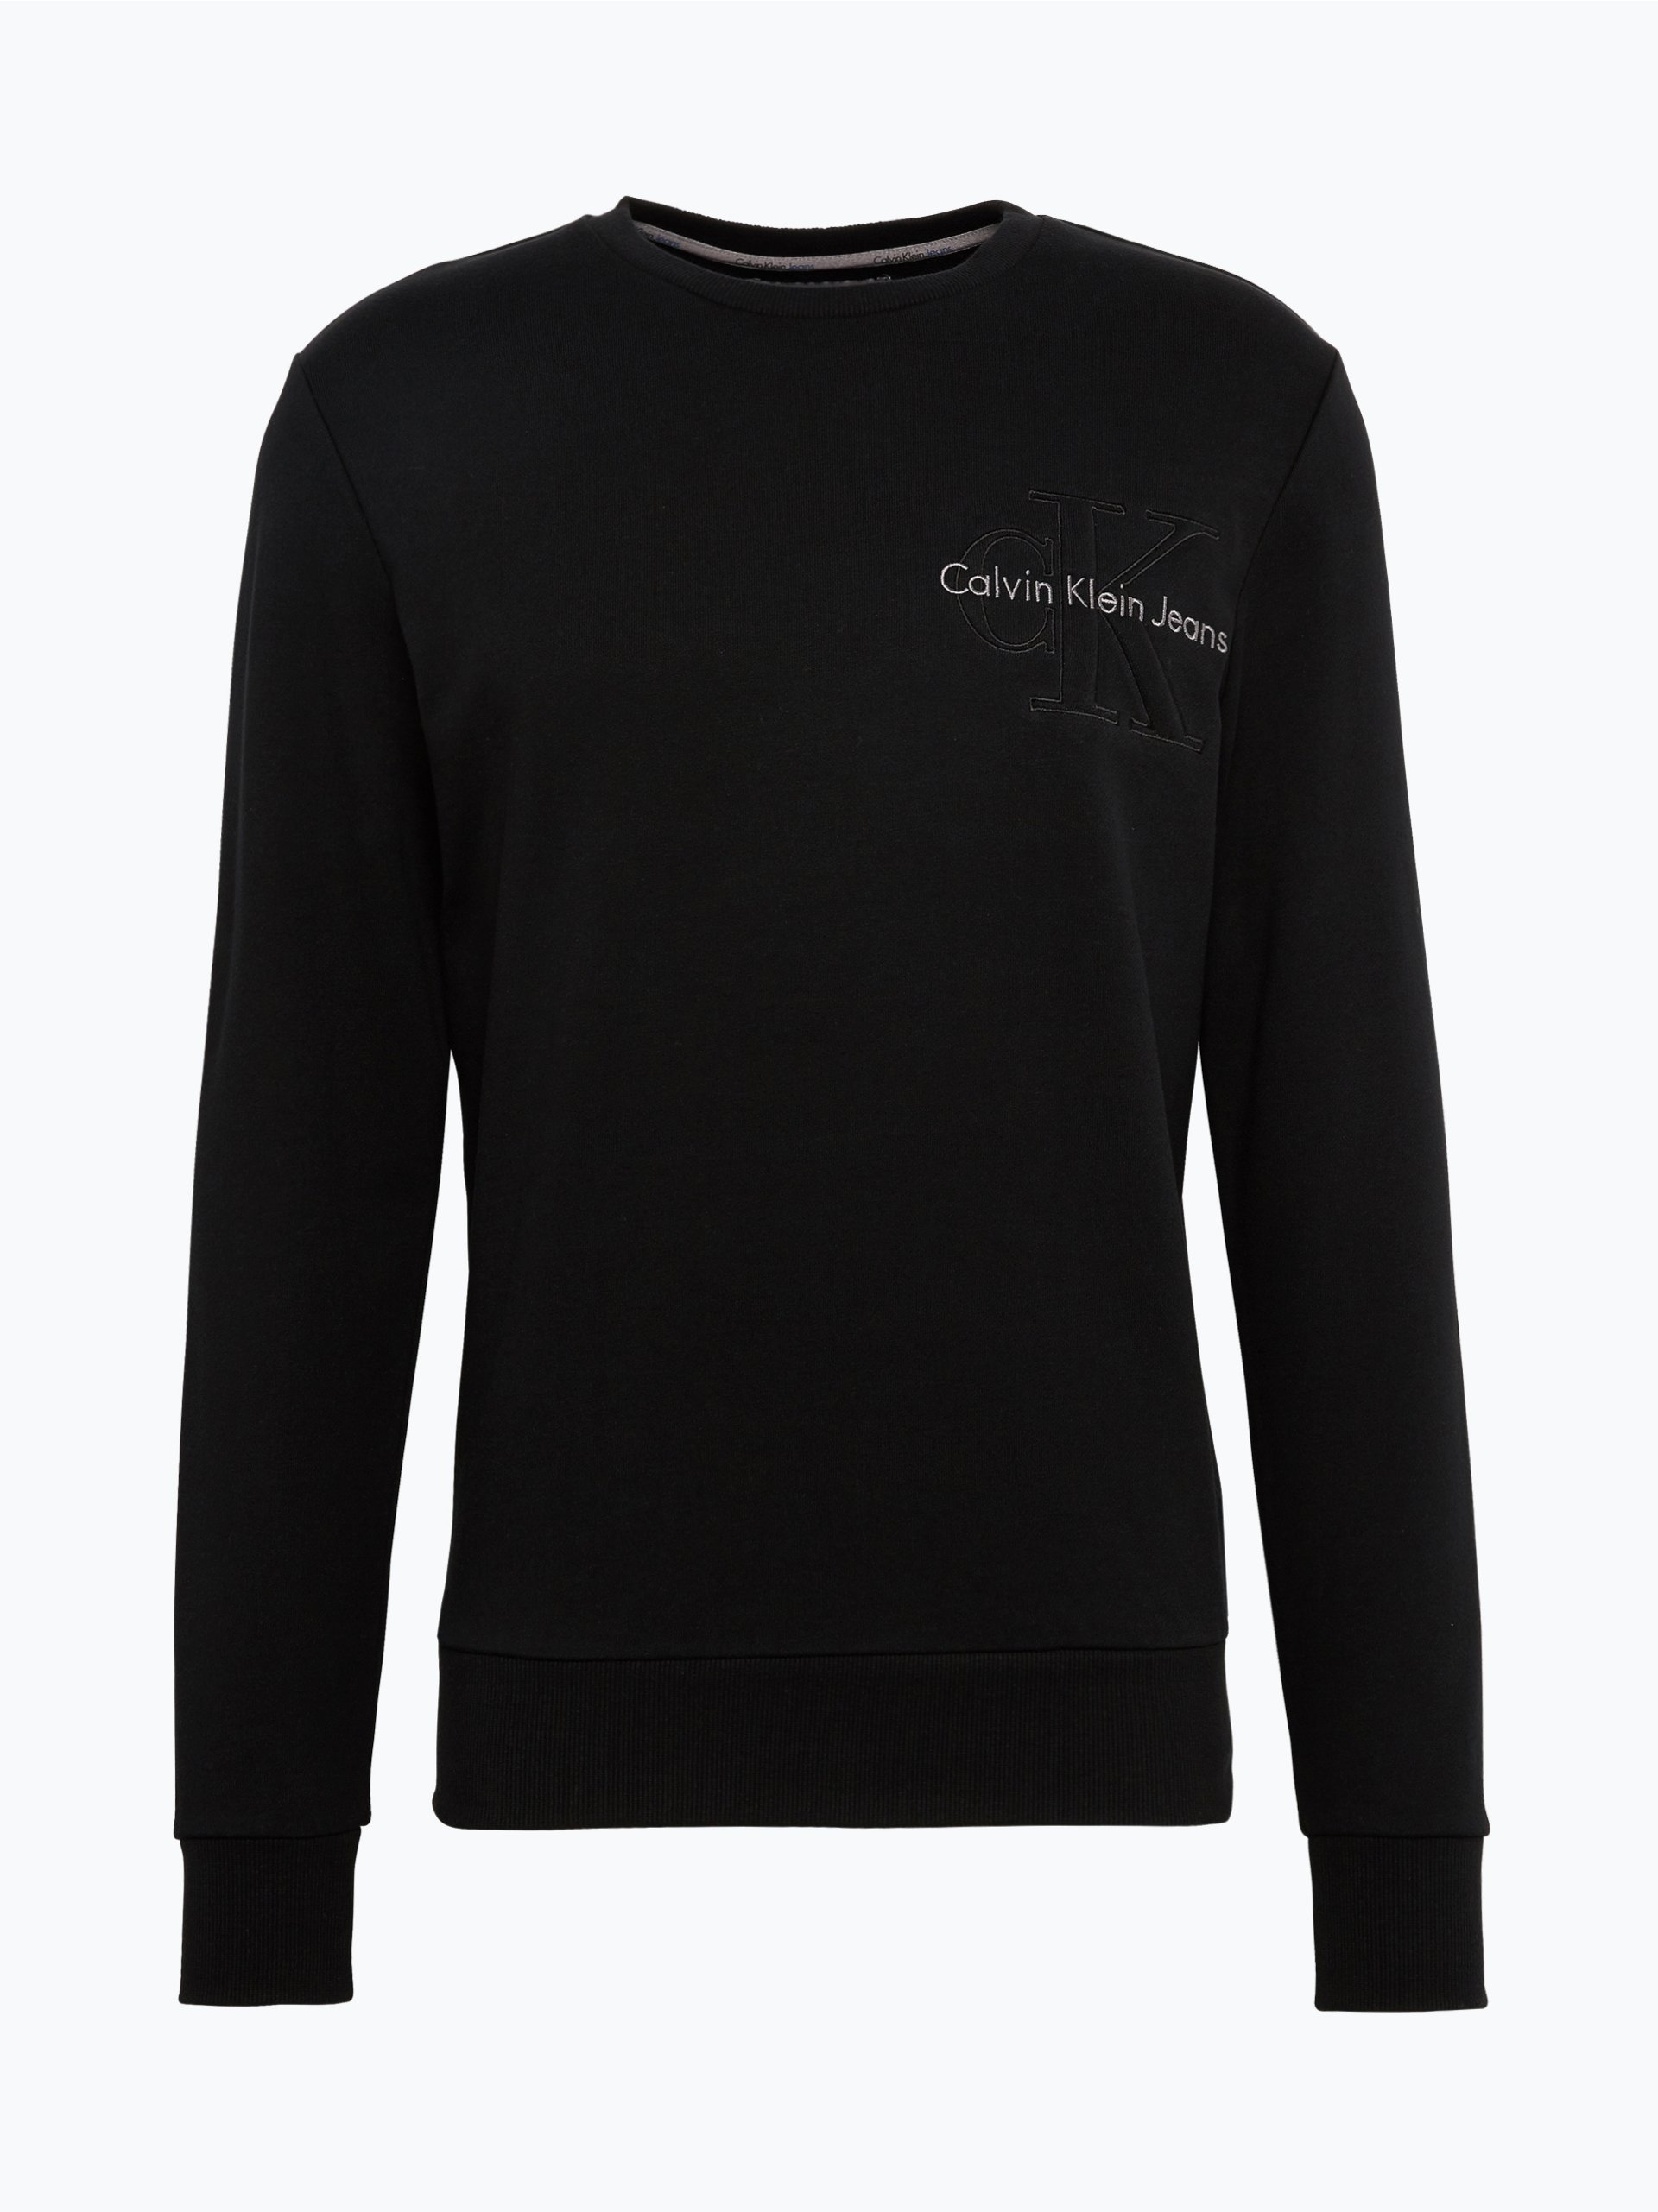 calvin klein jeans herren sweatshirt schwarz uni online. Black Bedroom Furniture Sets. Home Design Ideas